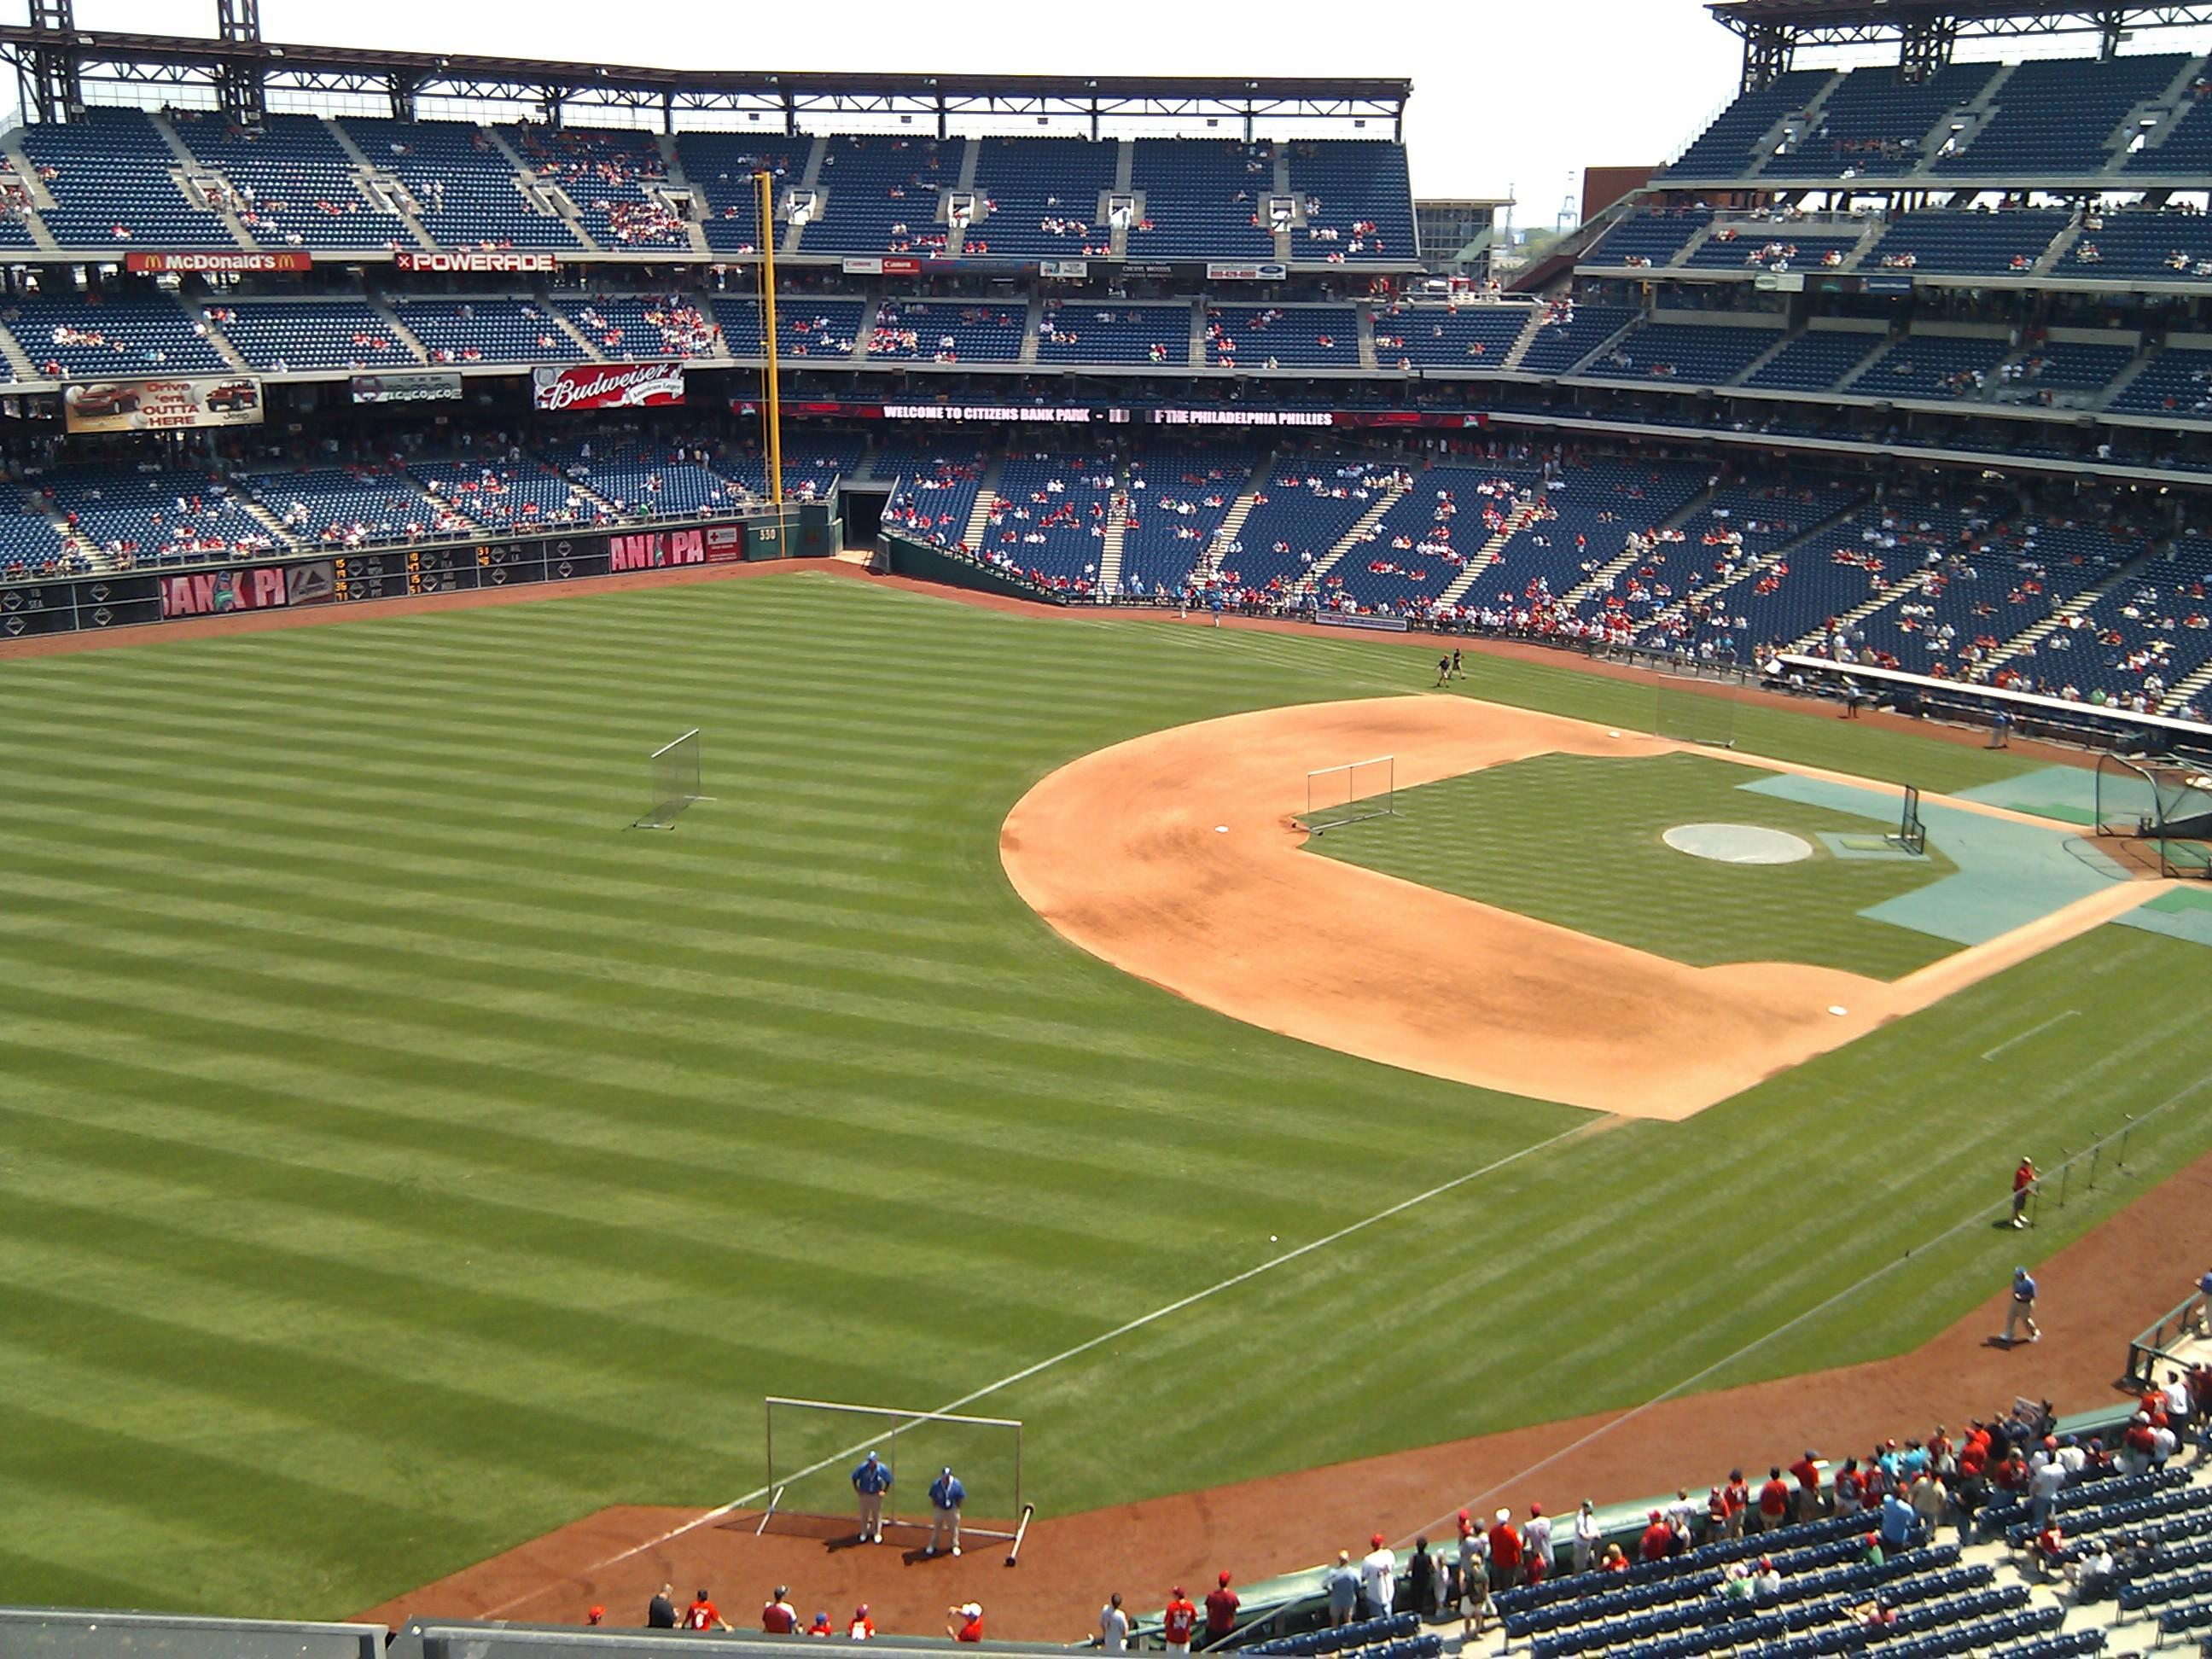 Citizens Bank Park Section 431 Row 8 Seat 8